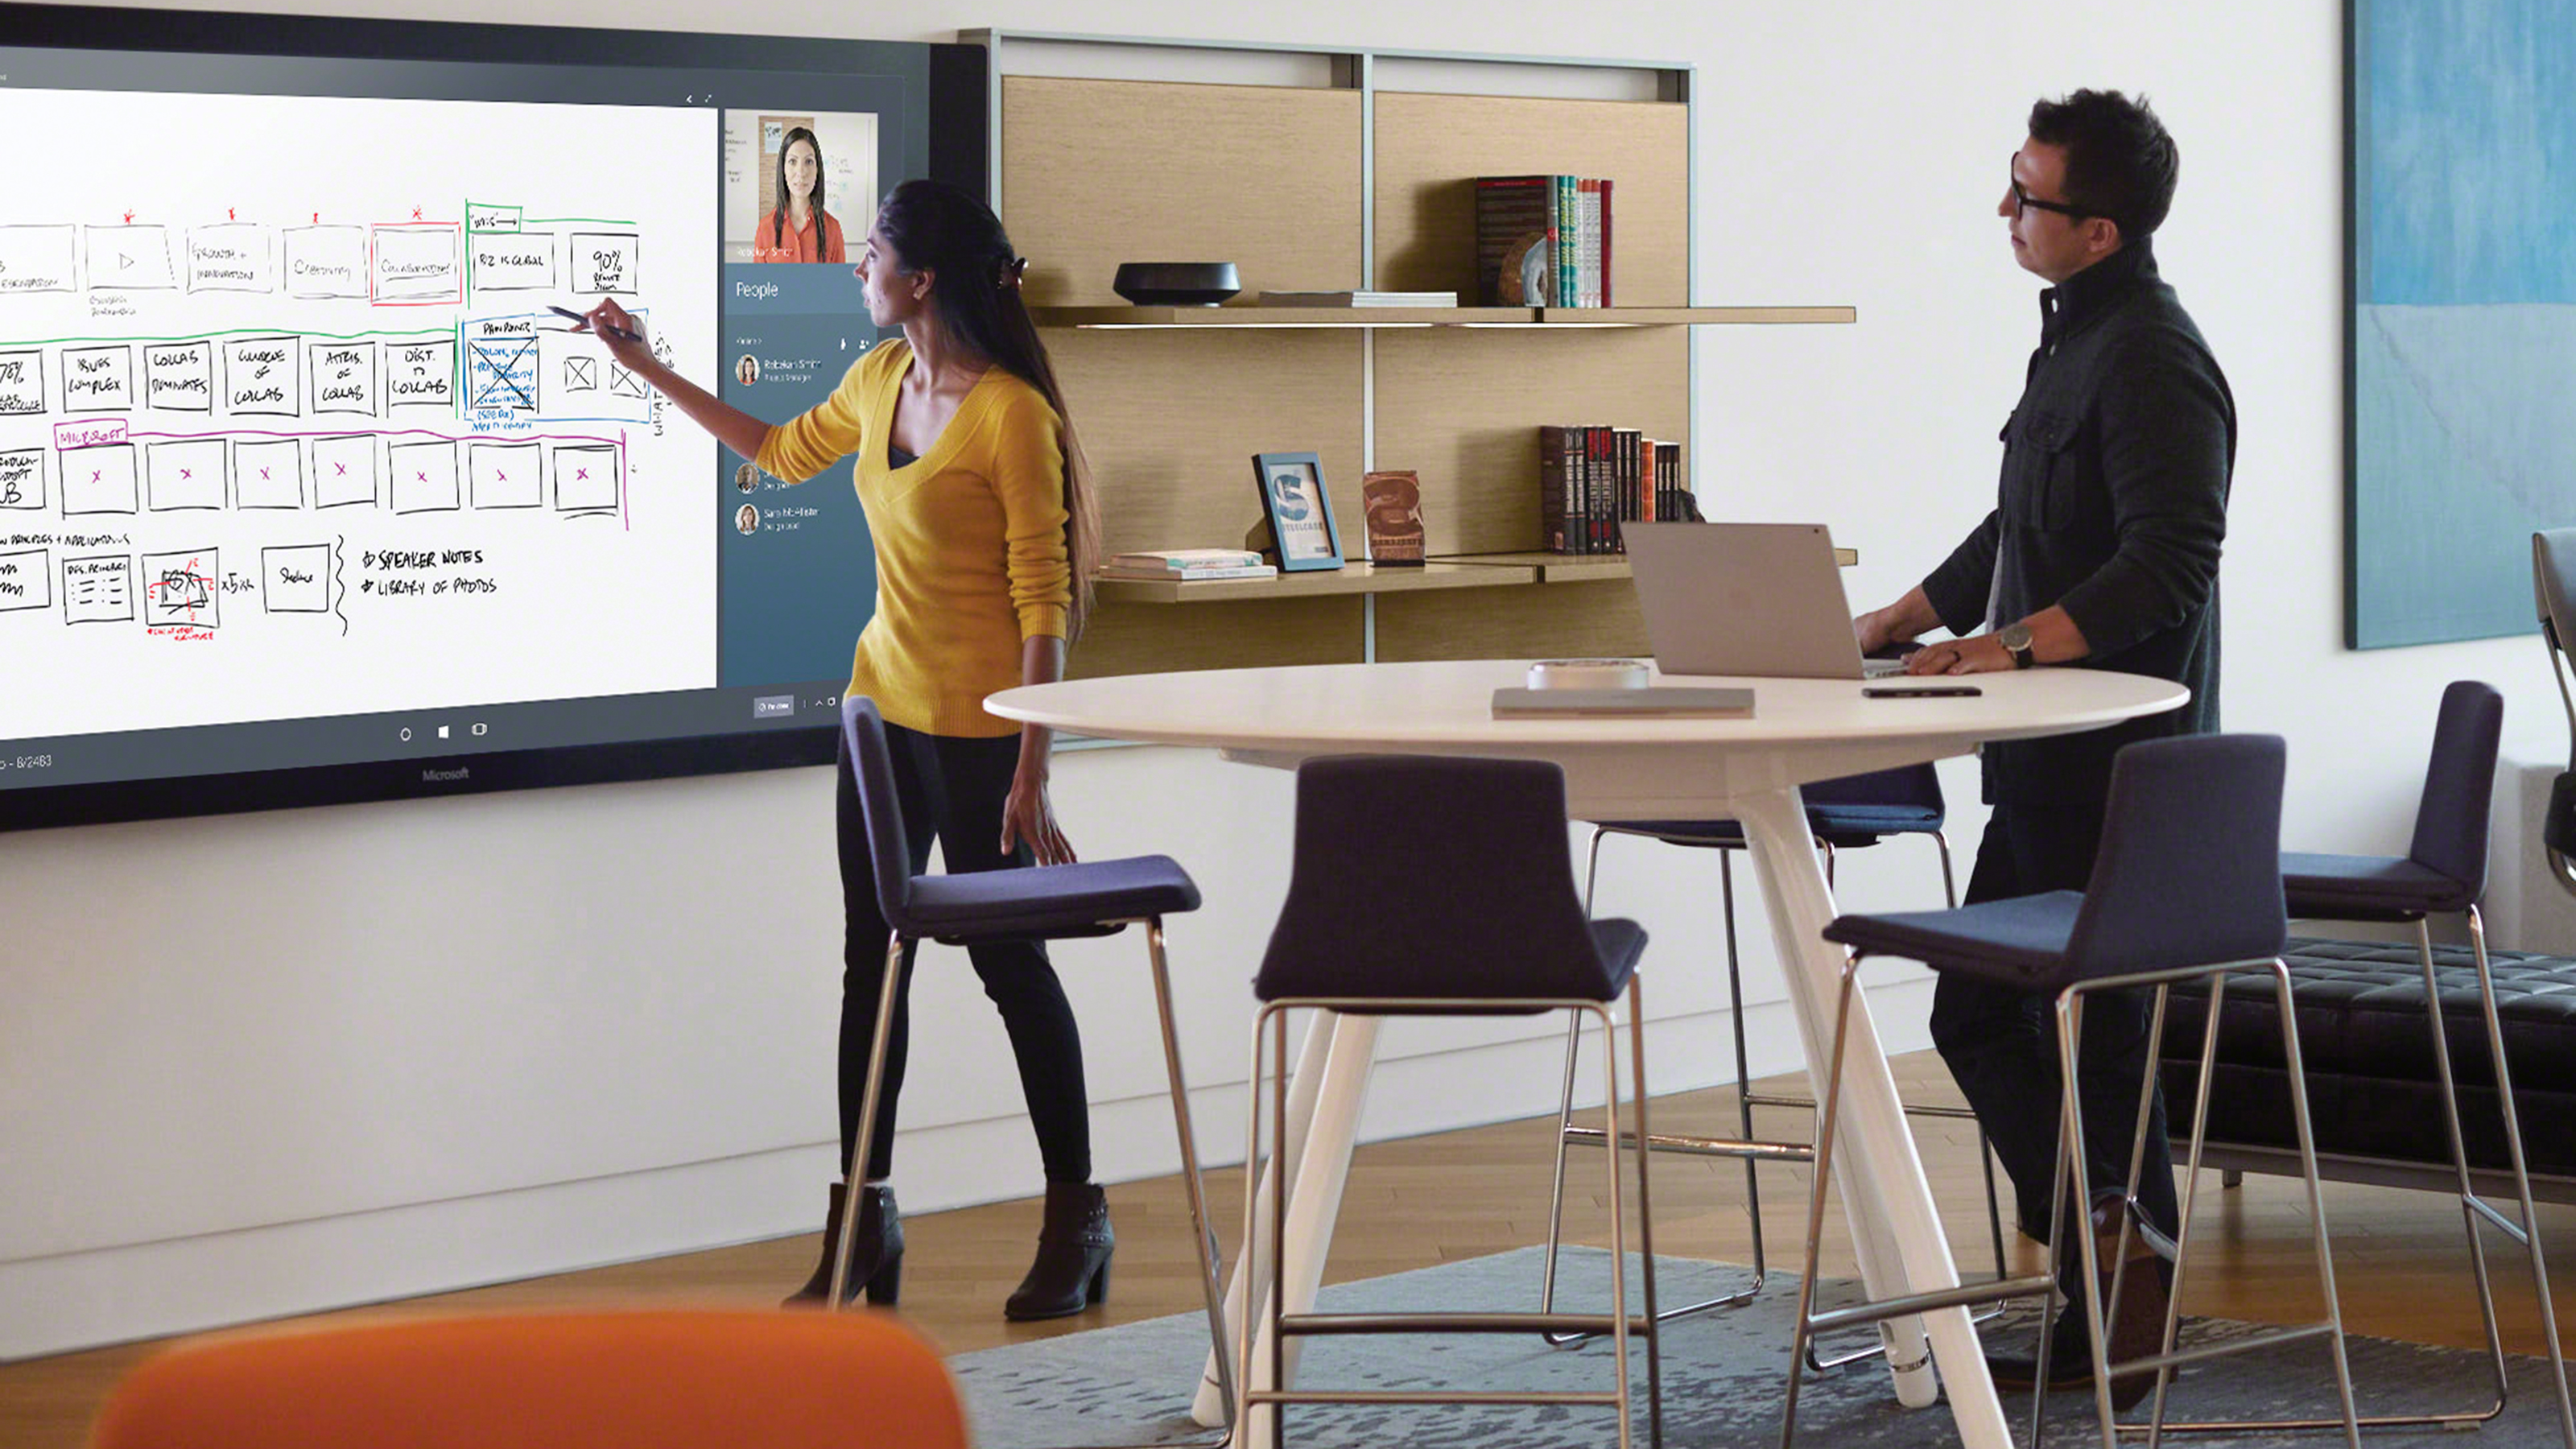 design inspiration  ideas for modern office workspaces  steelcase - creative spaces steelcase  microsoft